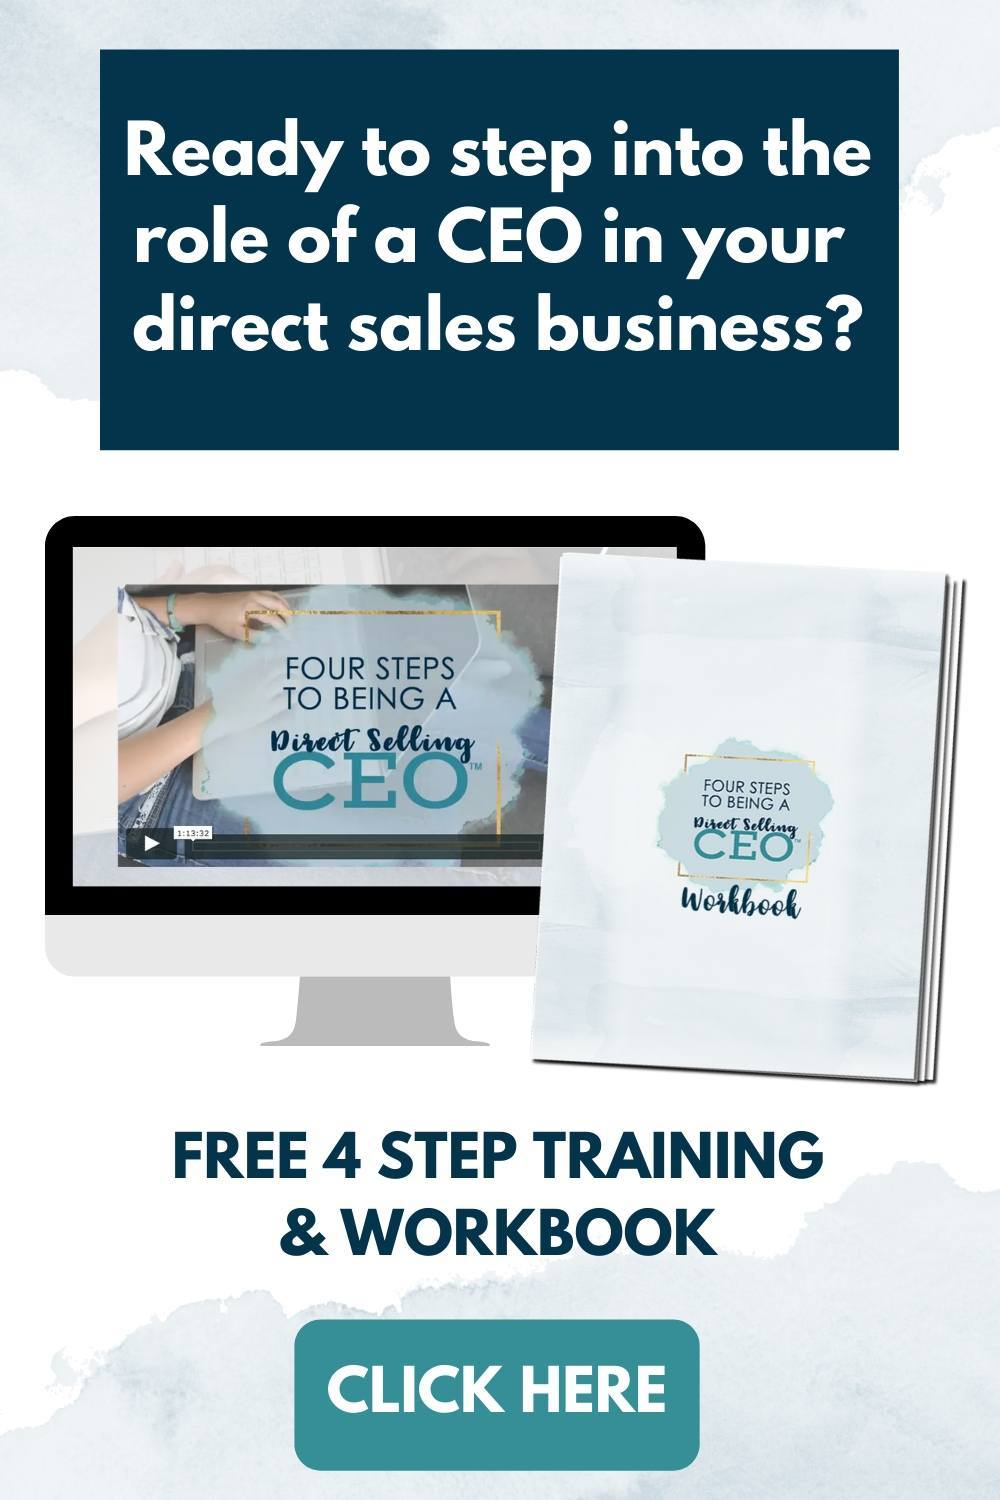 Free Training - 4 Steps to Being a Direct Selling CEO